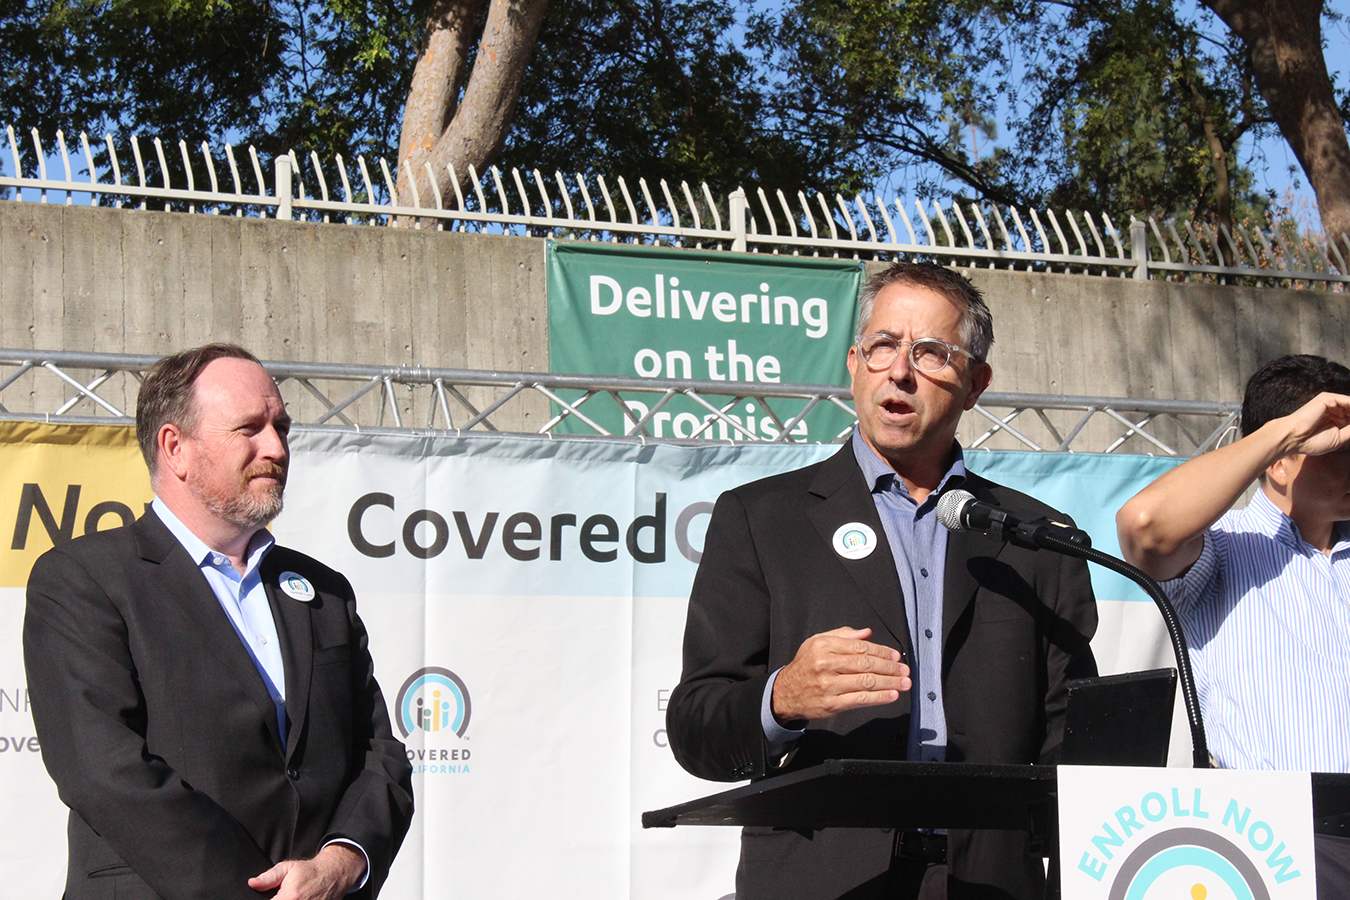 Leader of California's Muscular Obamacare Exchange to Step Down